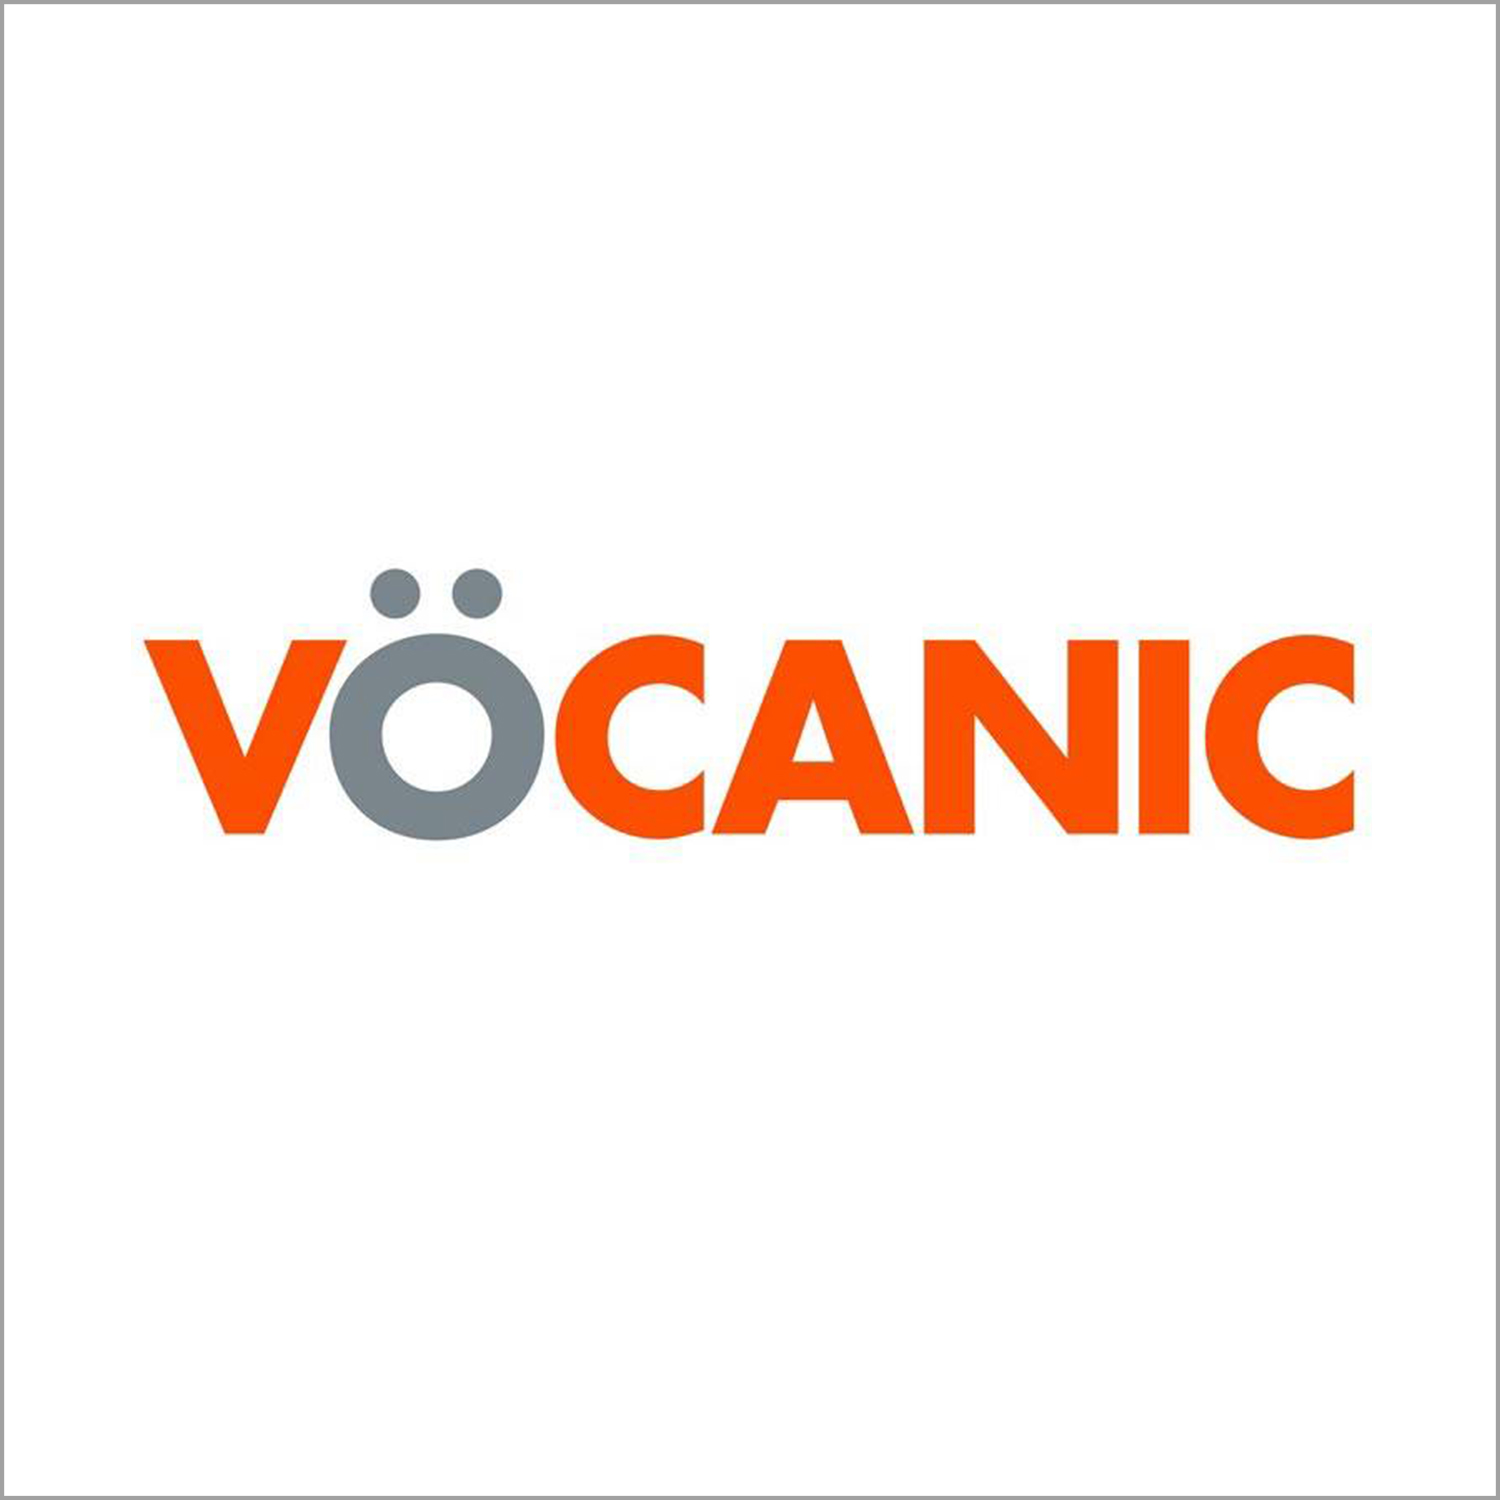 GroupM Vocanic_GS_Members_Logos.jpg